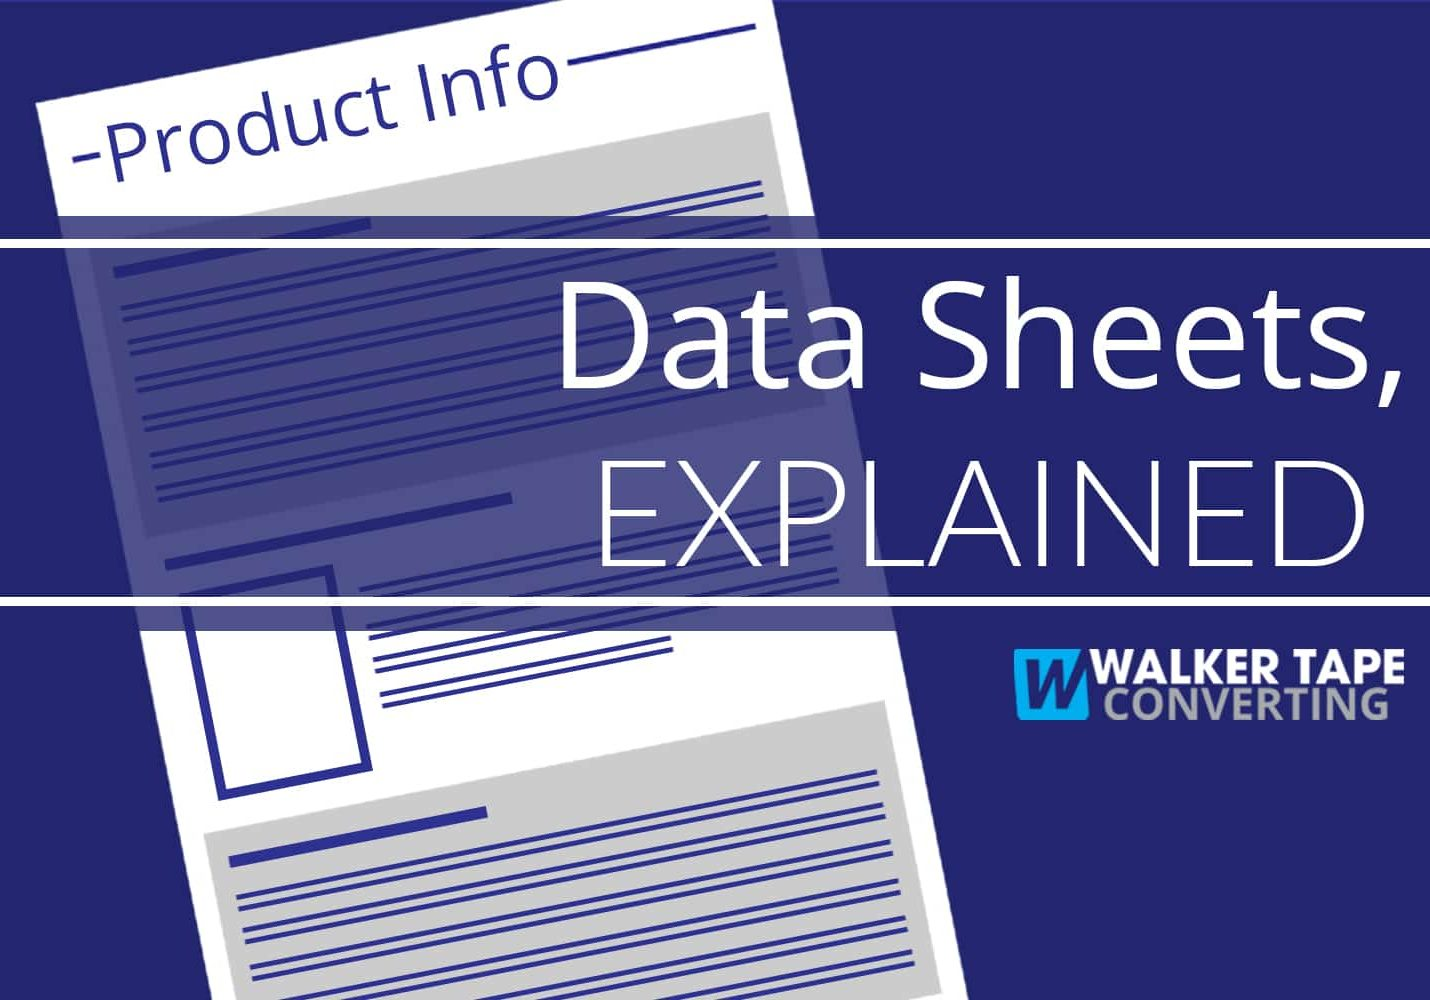 Data Sheets Explained